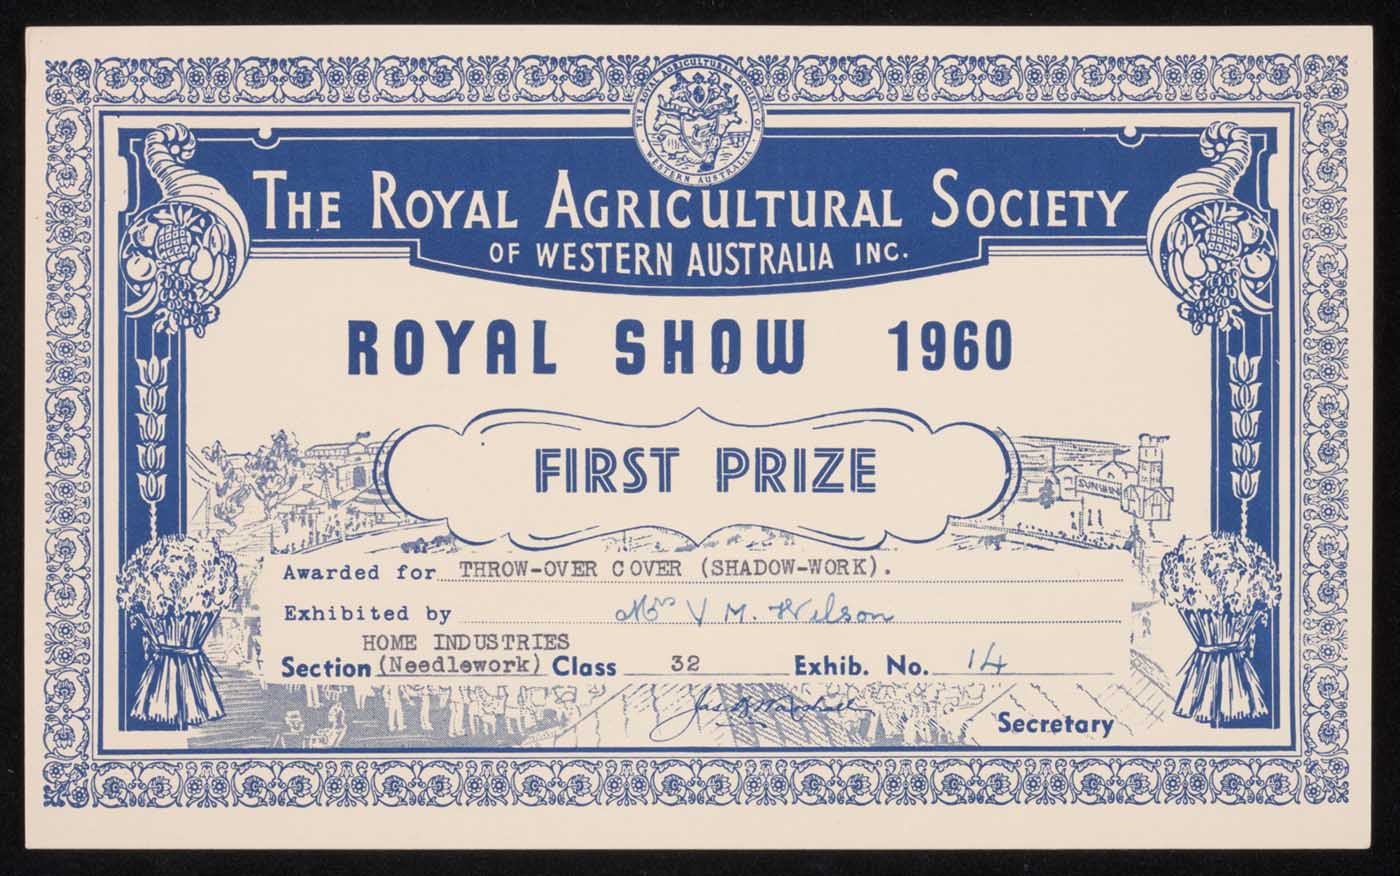 Royal Show 1960 first prize certificate